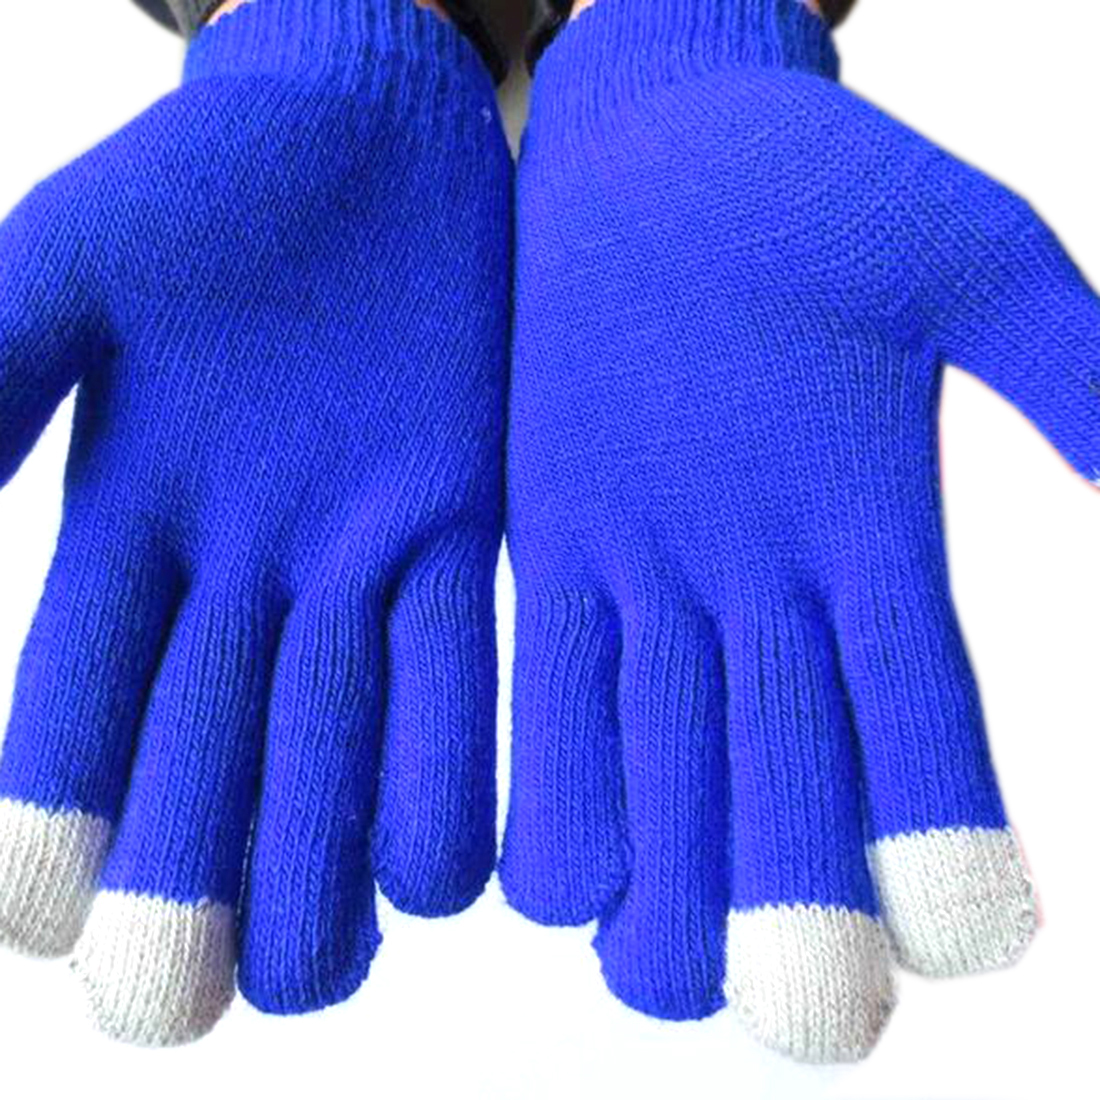 Winter Warm Colorful Touch Screen Gloves For Women Men Plus Thicken Knitted Five Finger Gloves Knit Solid Color Guantes Mittens